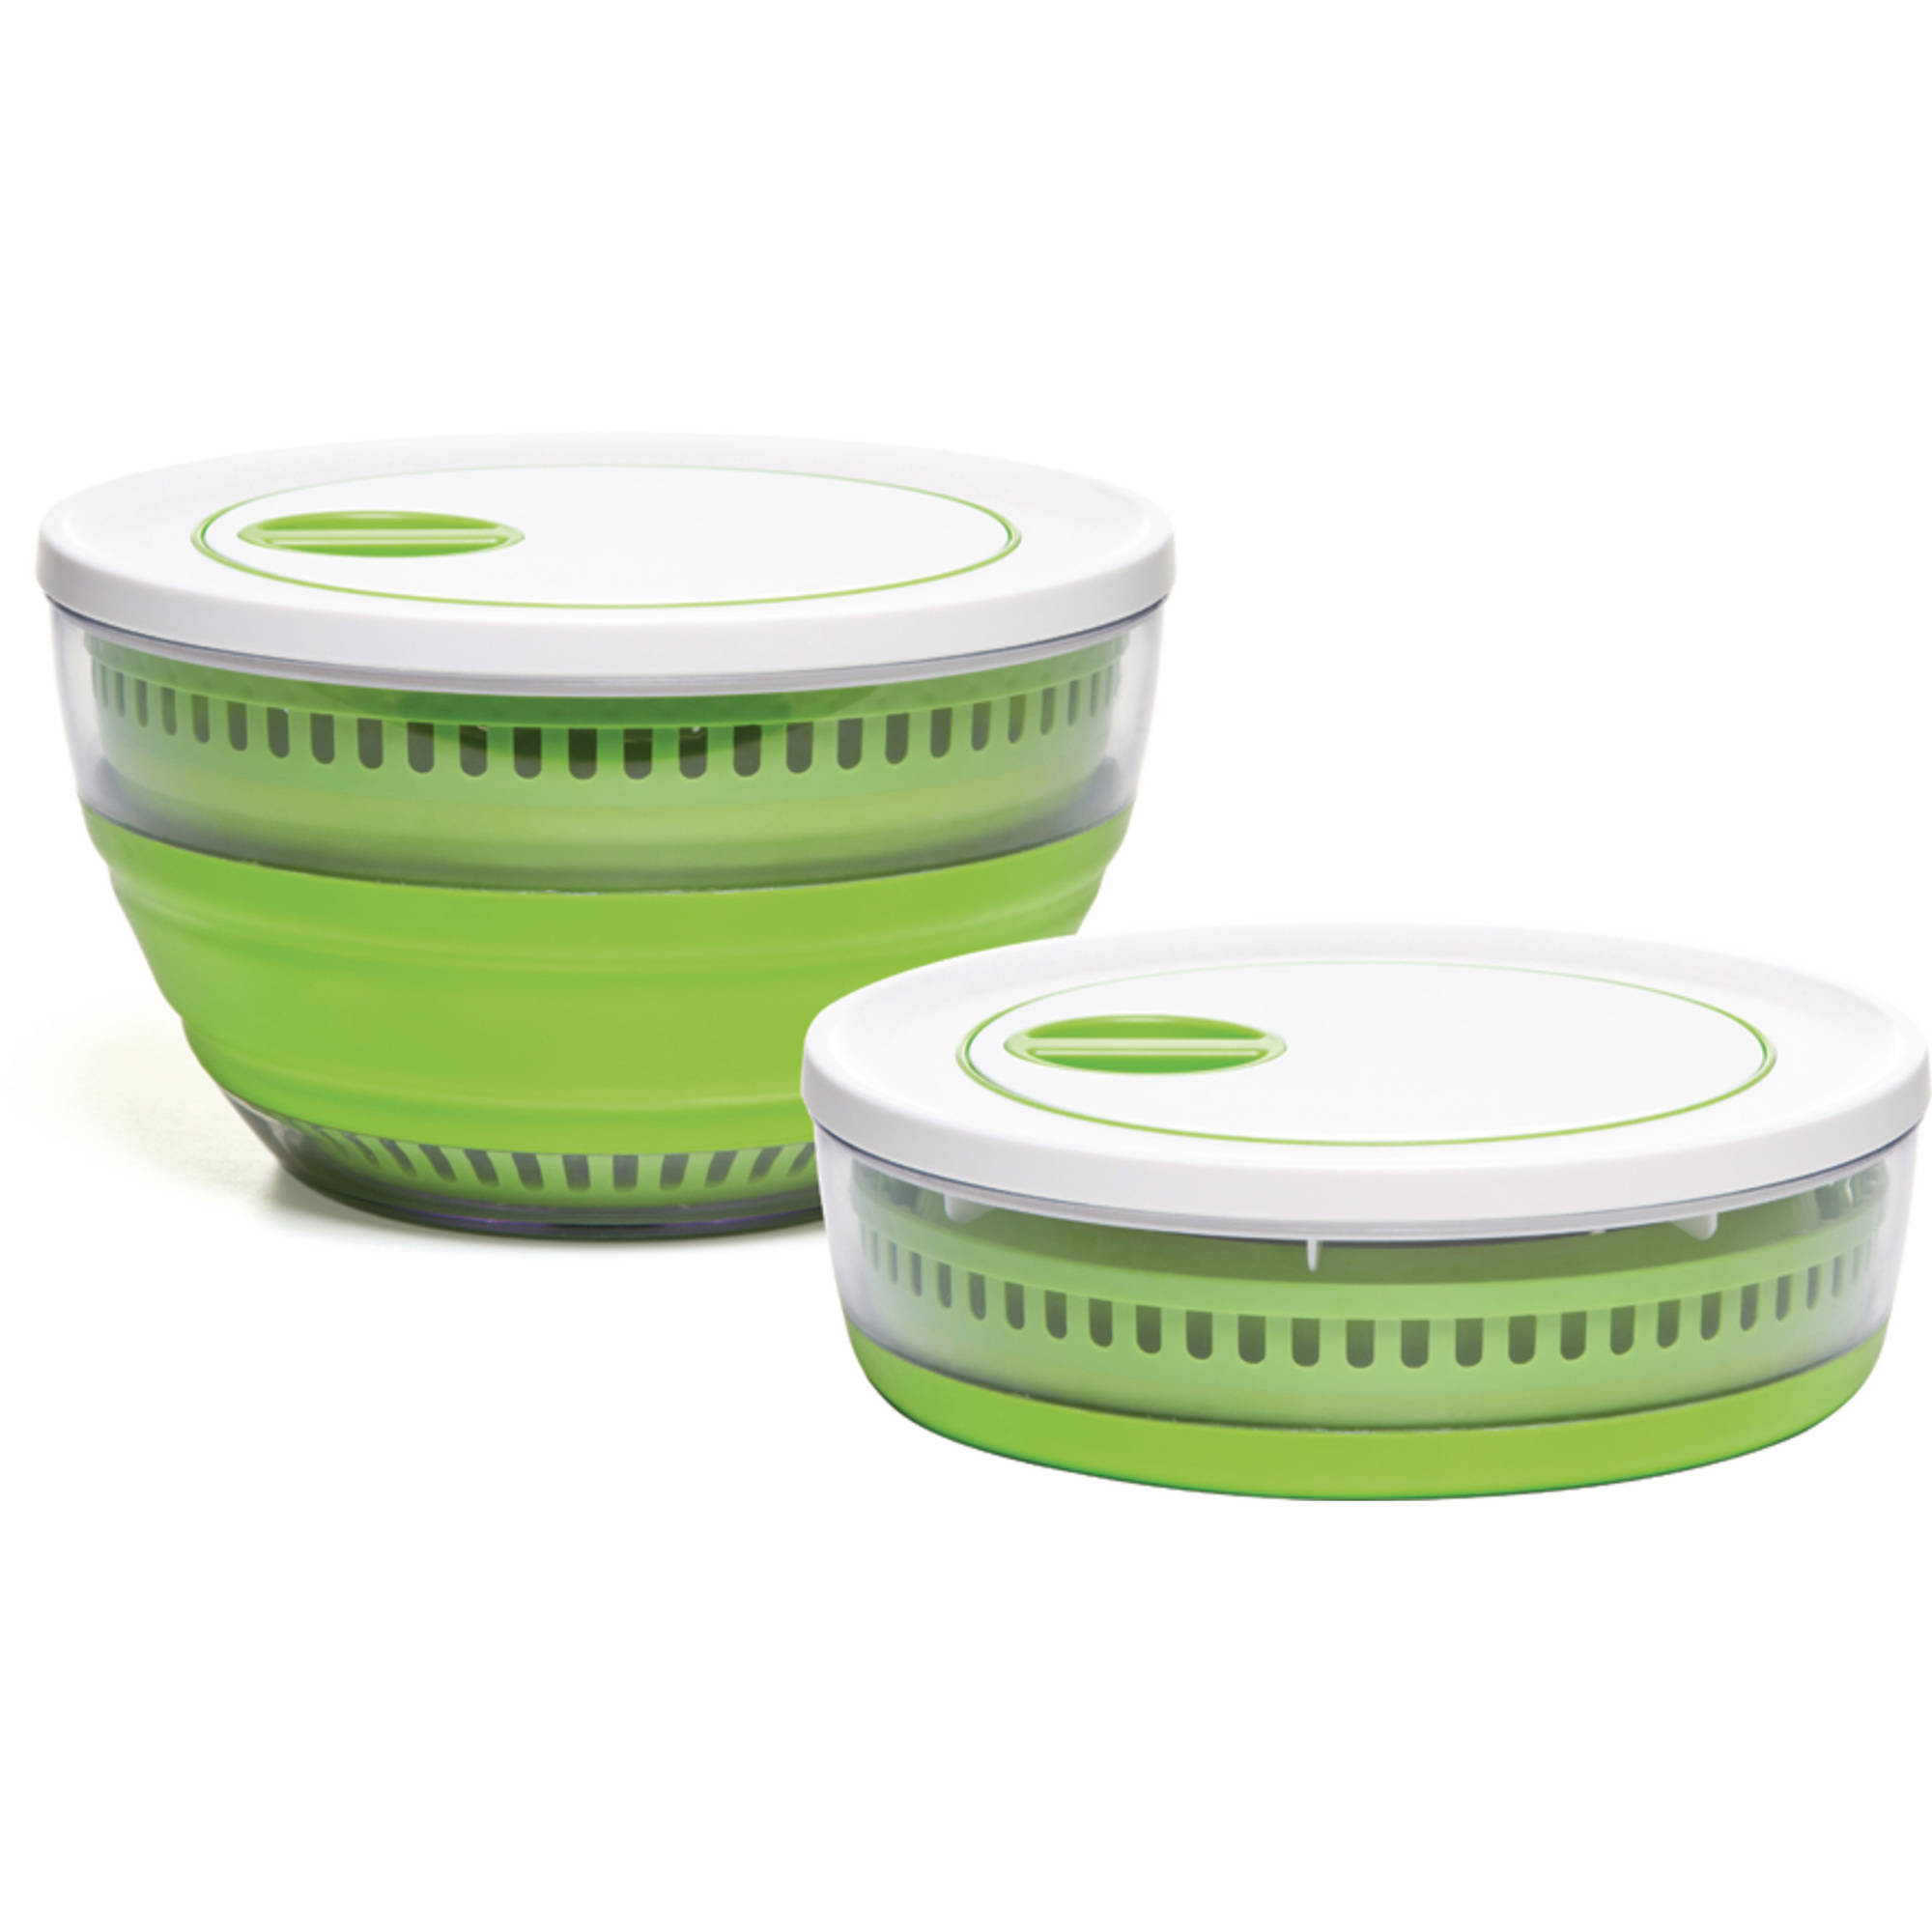 Prepworks Collapsible Salad Spinner, 4-Quart Capacity